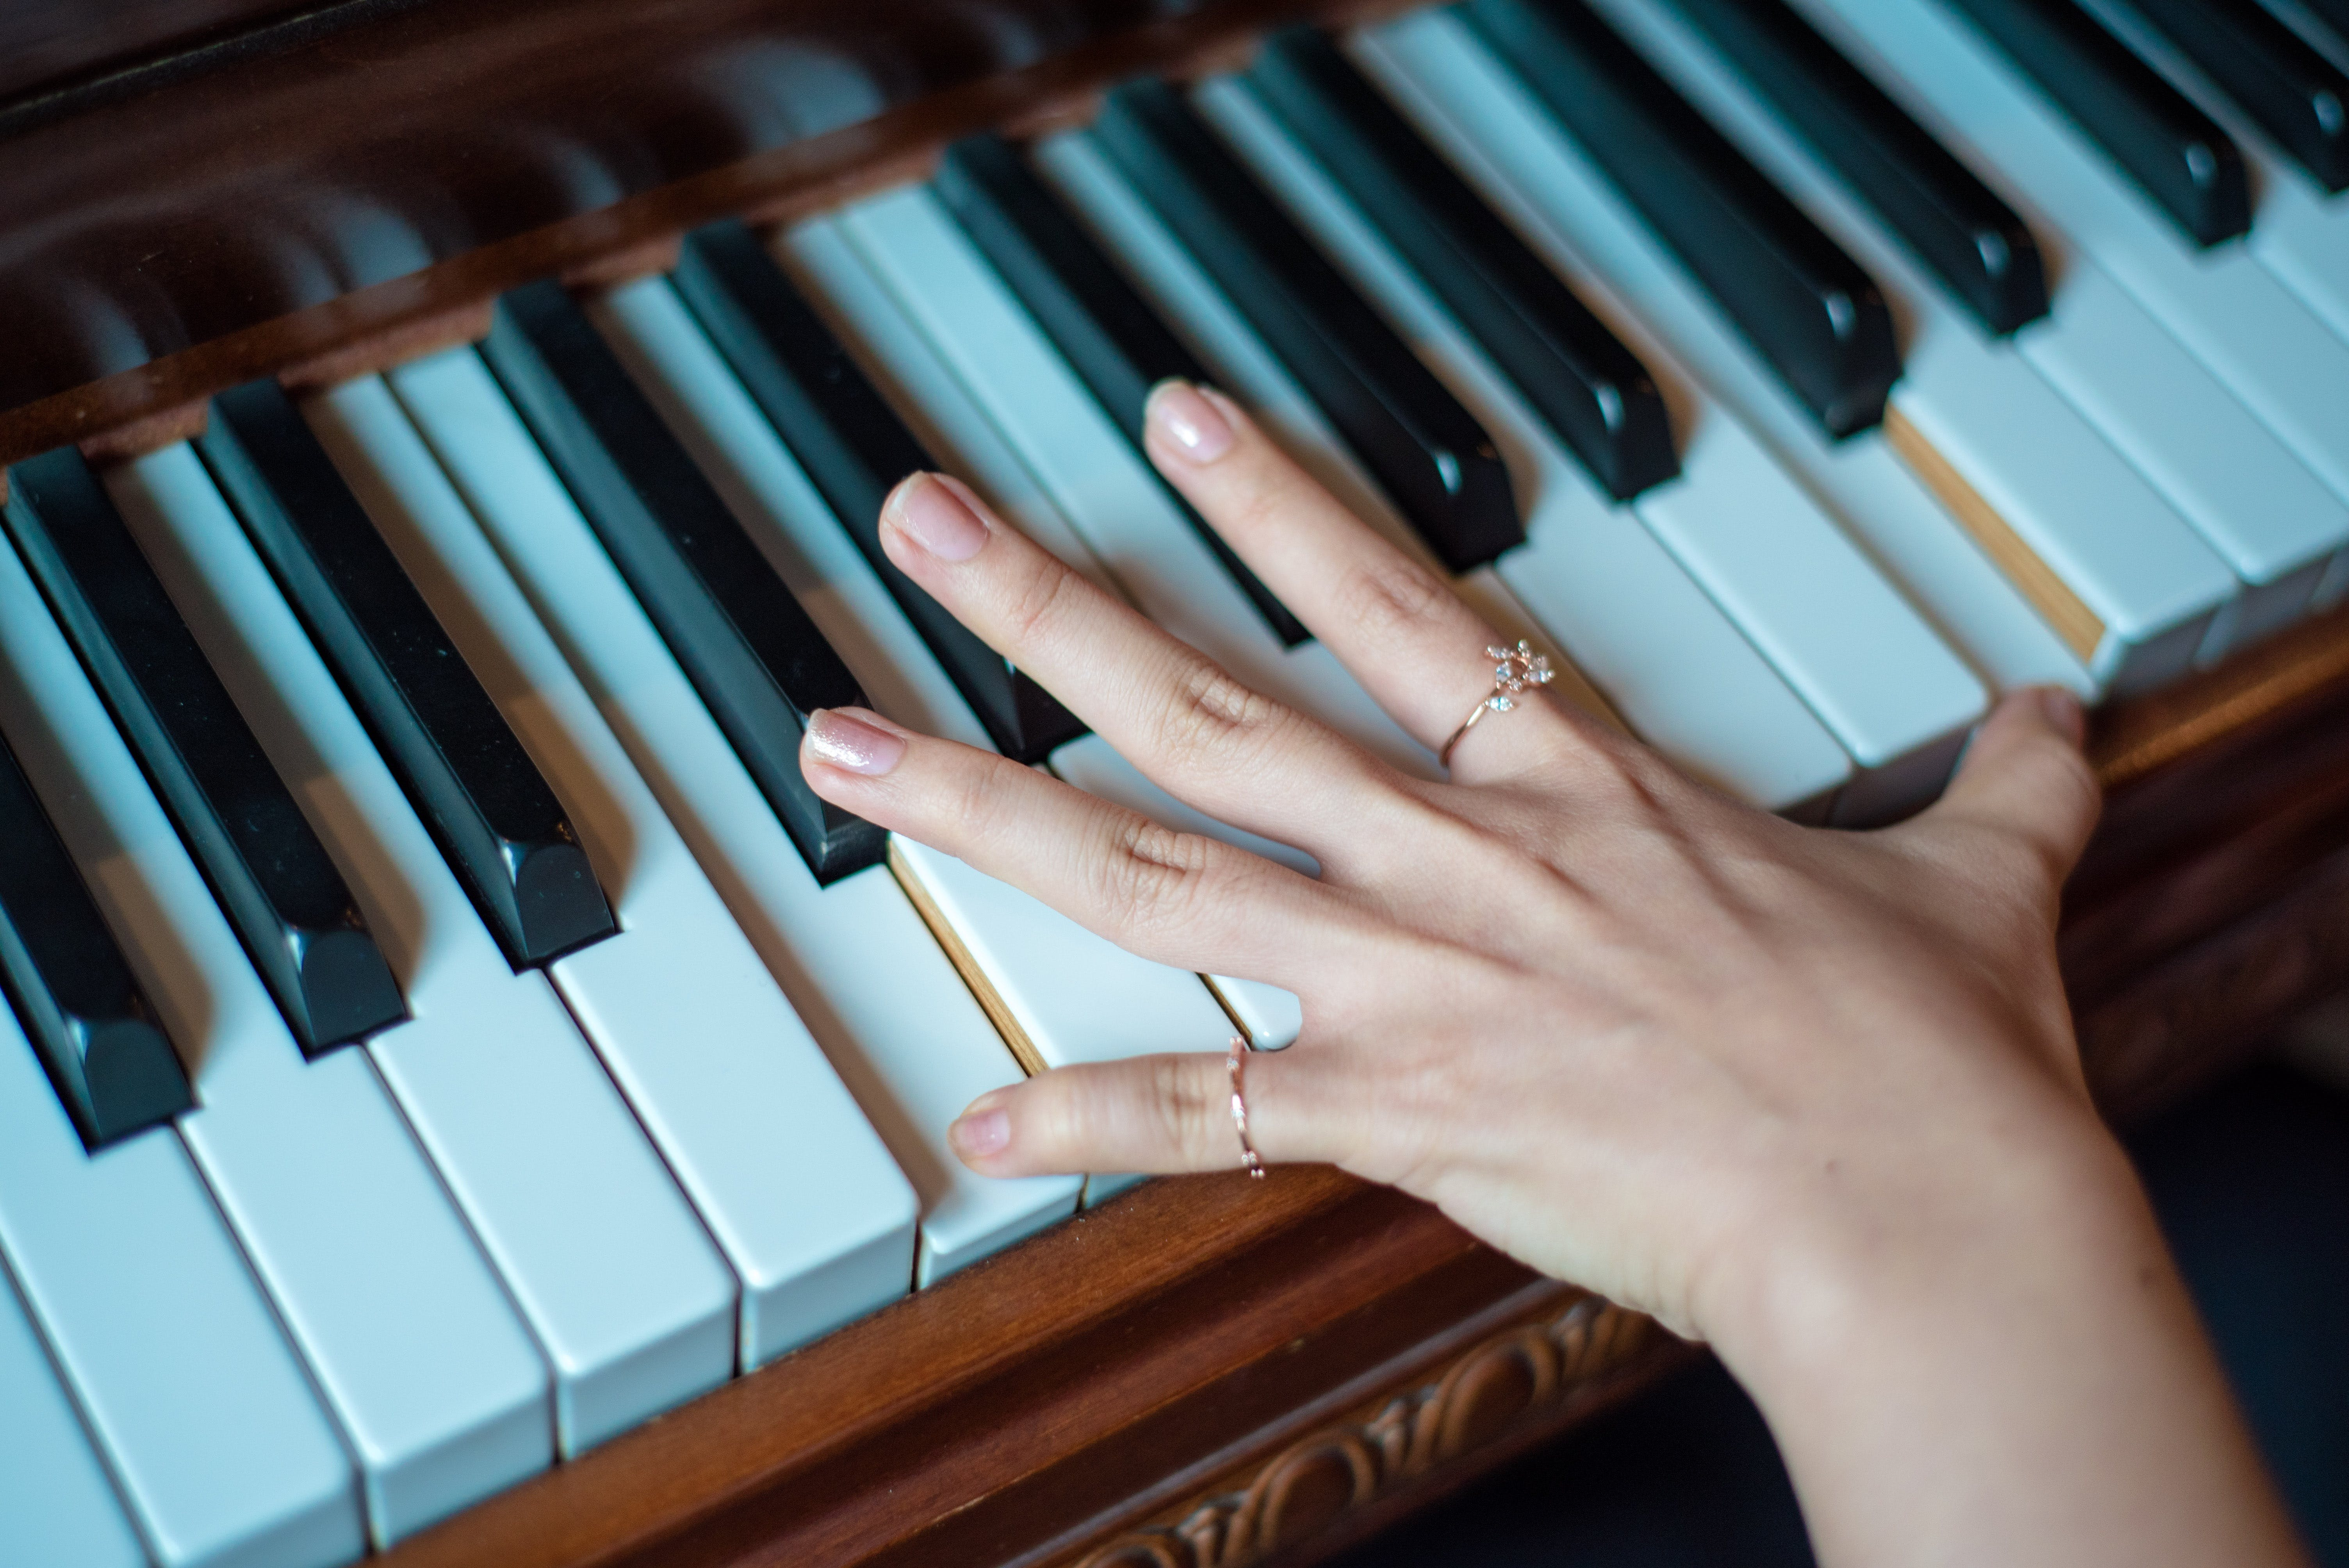 Brown Wooden Piano Used by a Person Using 2 Fingers